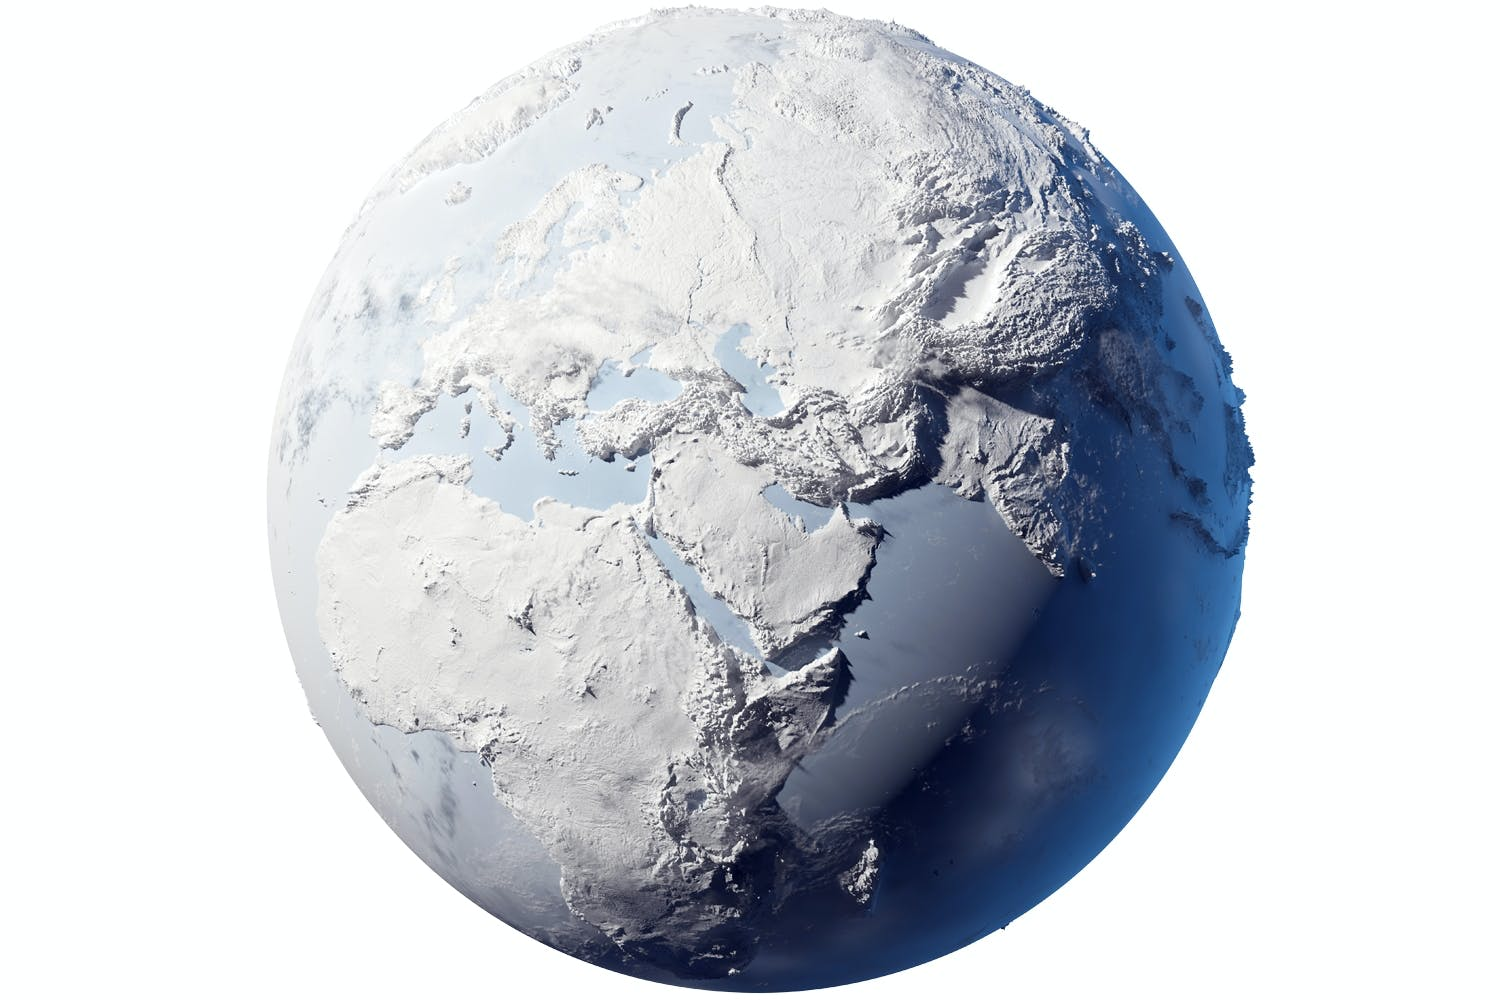 Earth in snowball phase